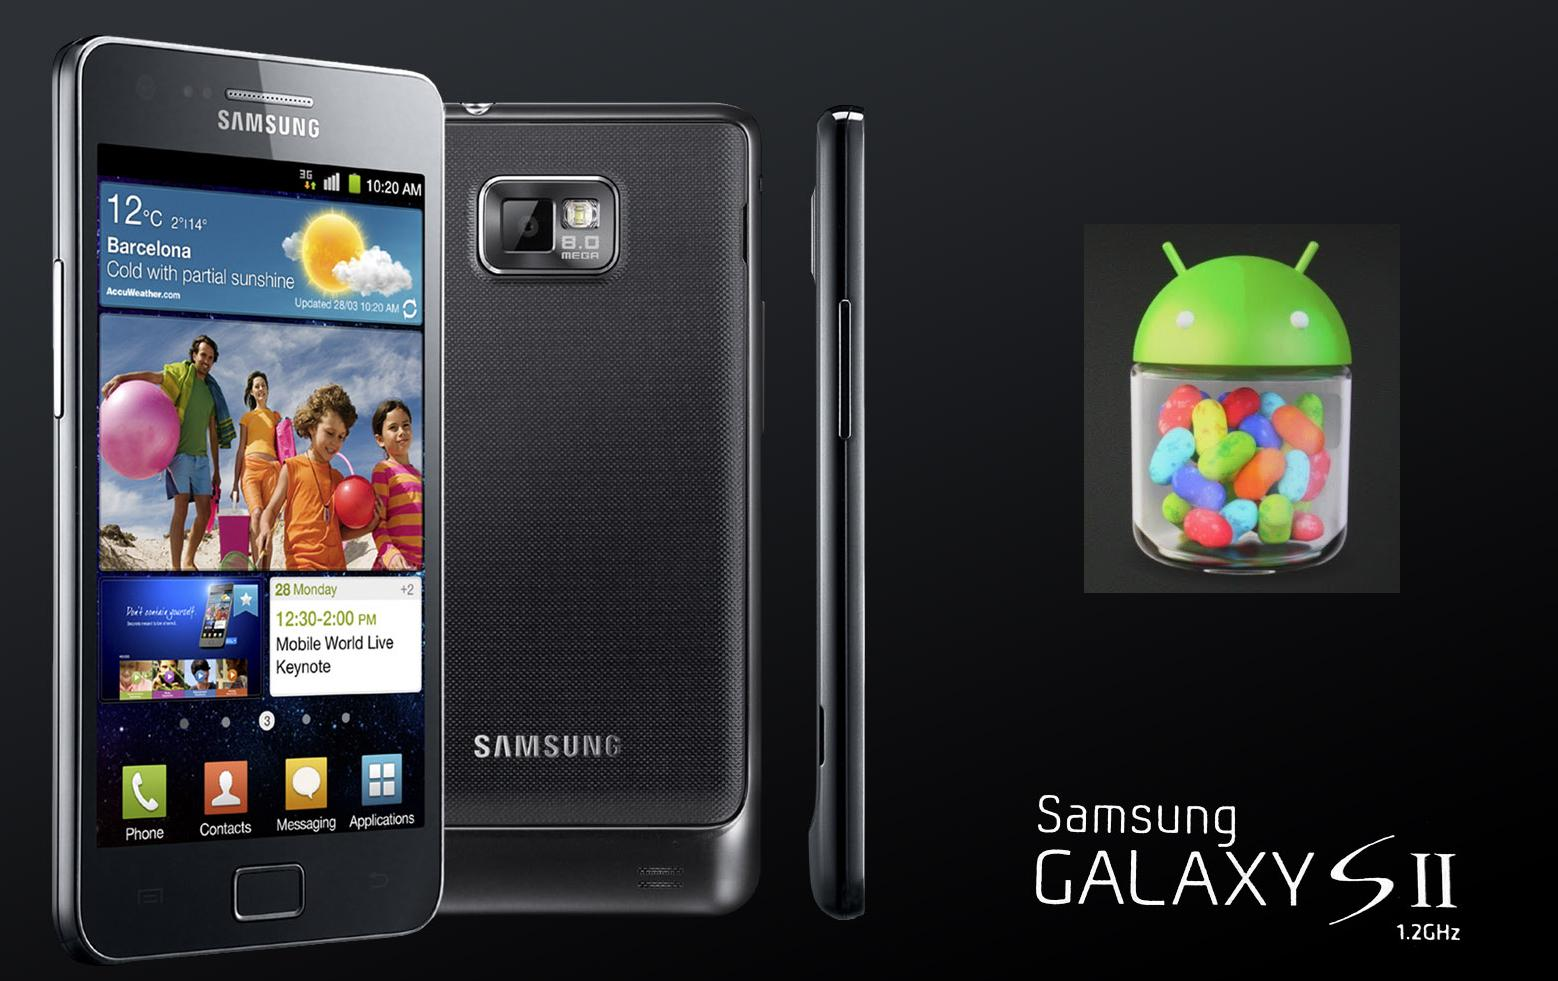 How to Update Samsung Galaxy S2 to Jelly Bean 4.1.2 without Kies